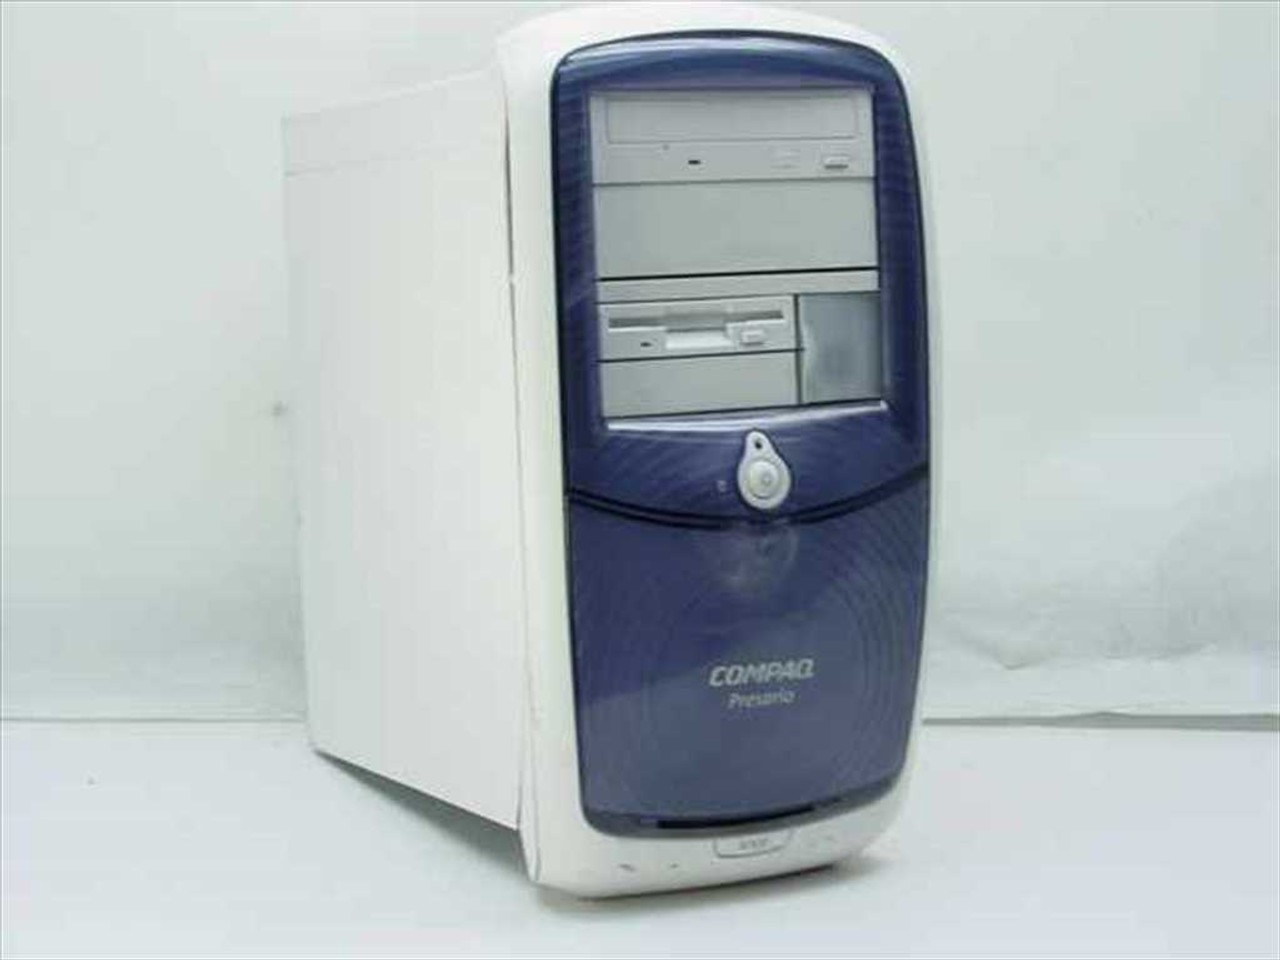 compaq presario 5000 series manual user guide manual that easy to rh lenderdirectory co Old Compaq Presario Desktop Compaq Presario S5000